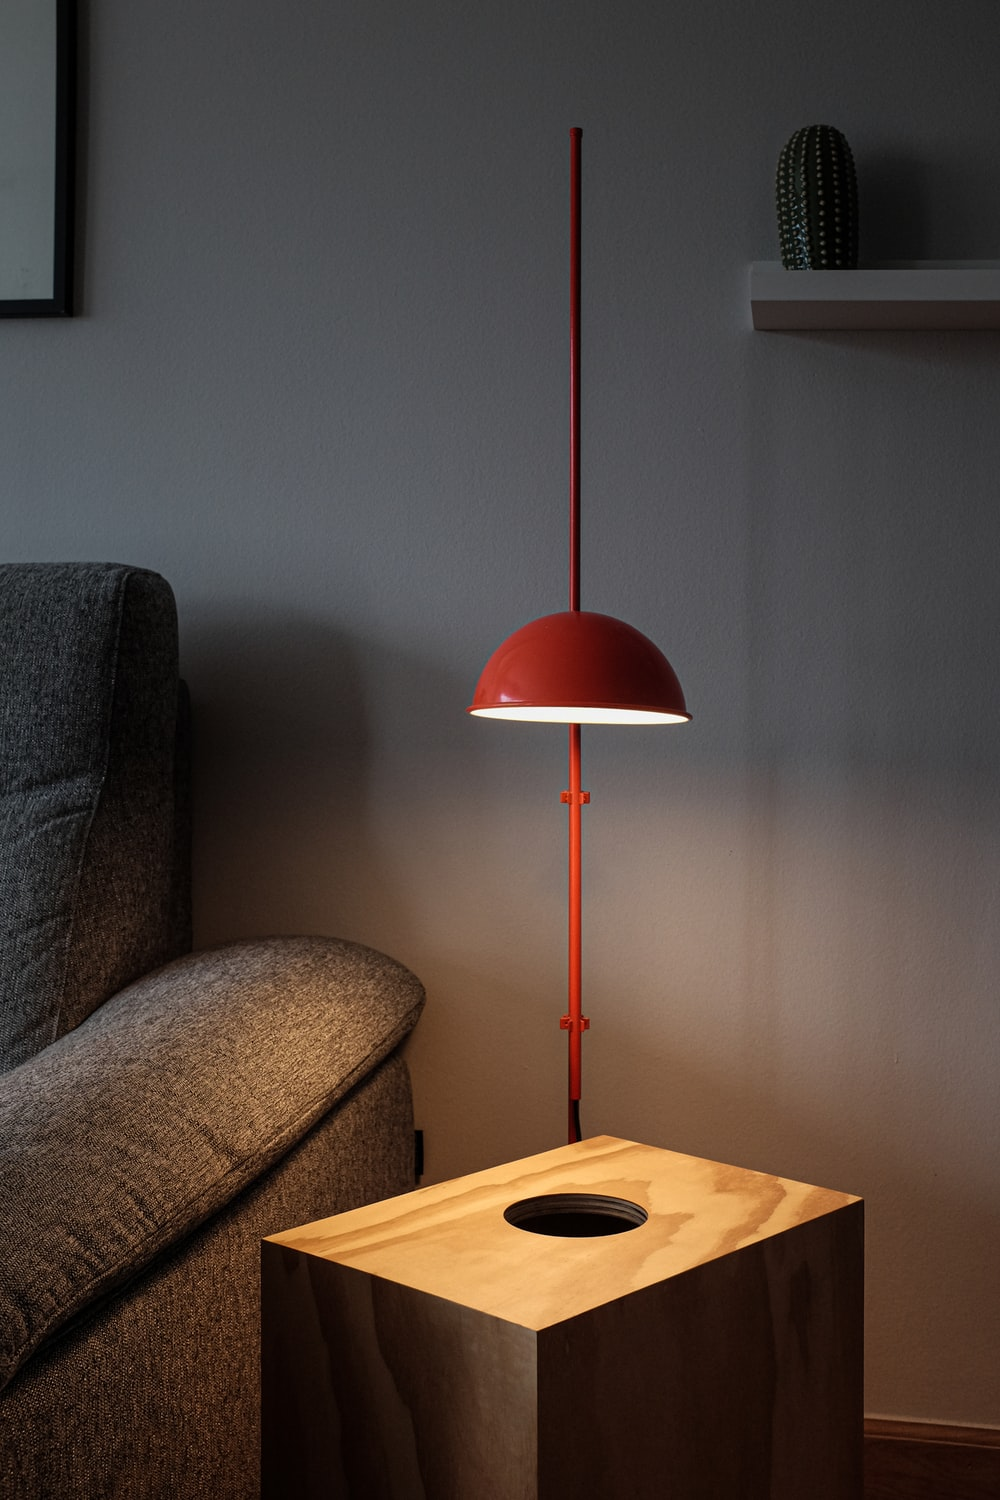 red table lamp on brown wooden table